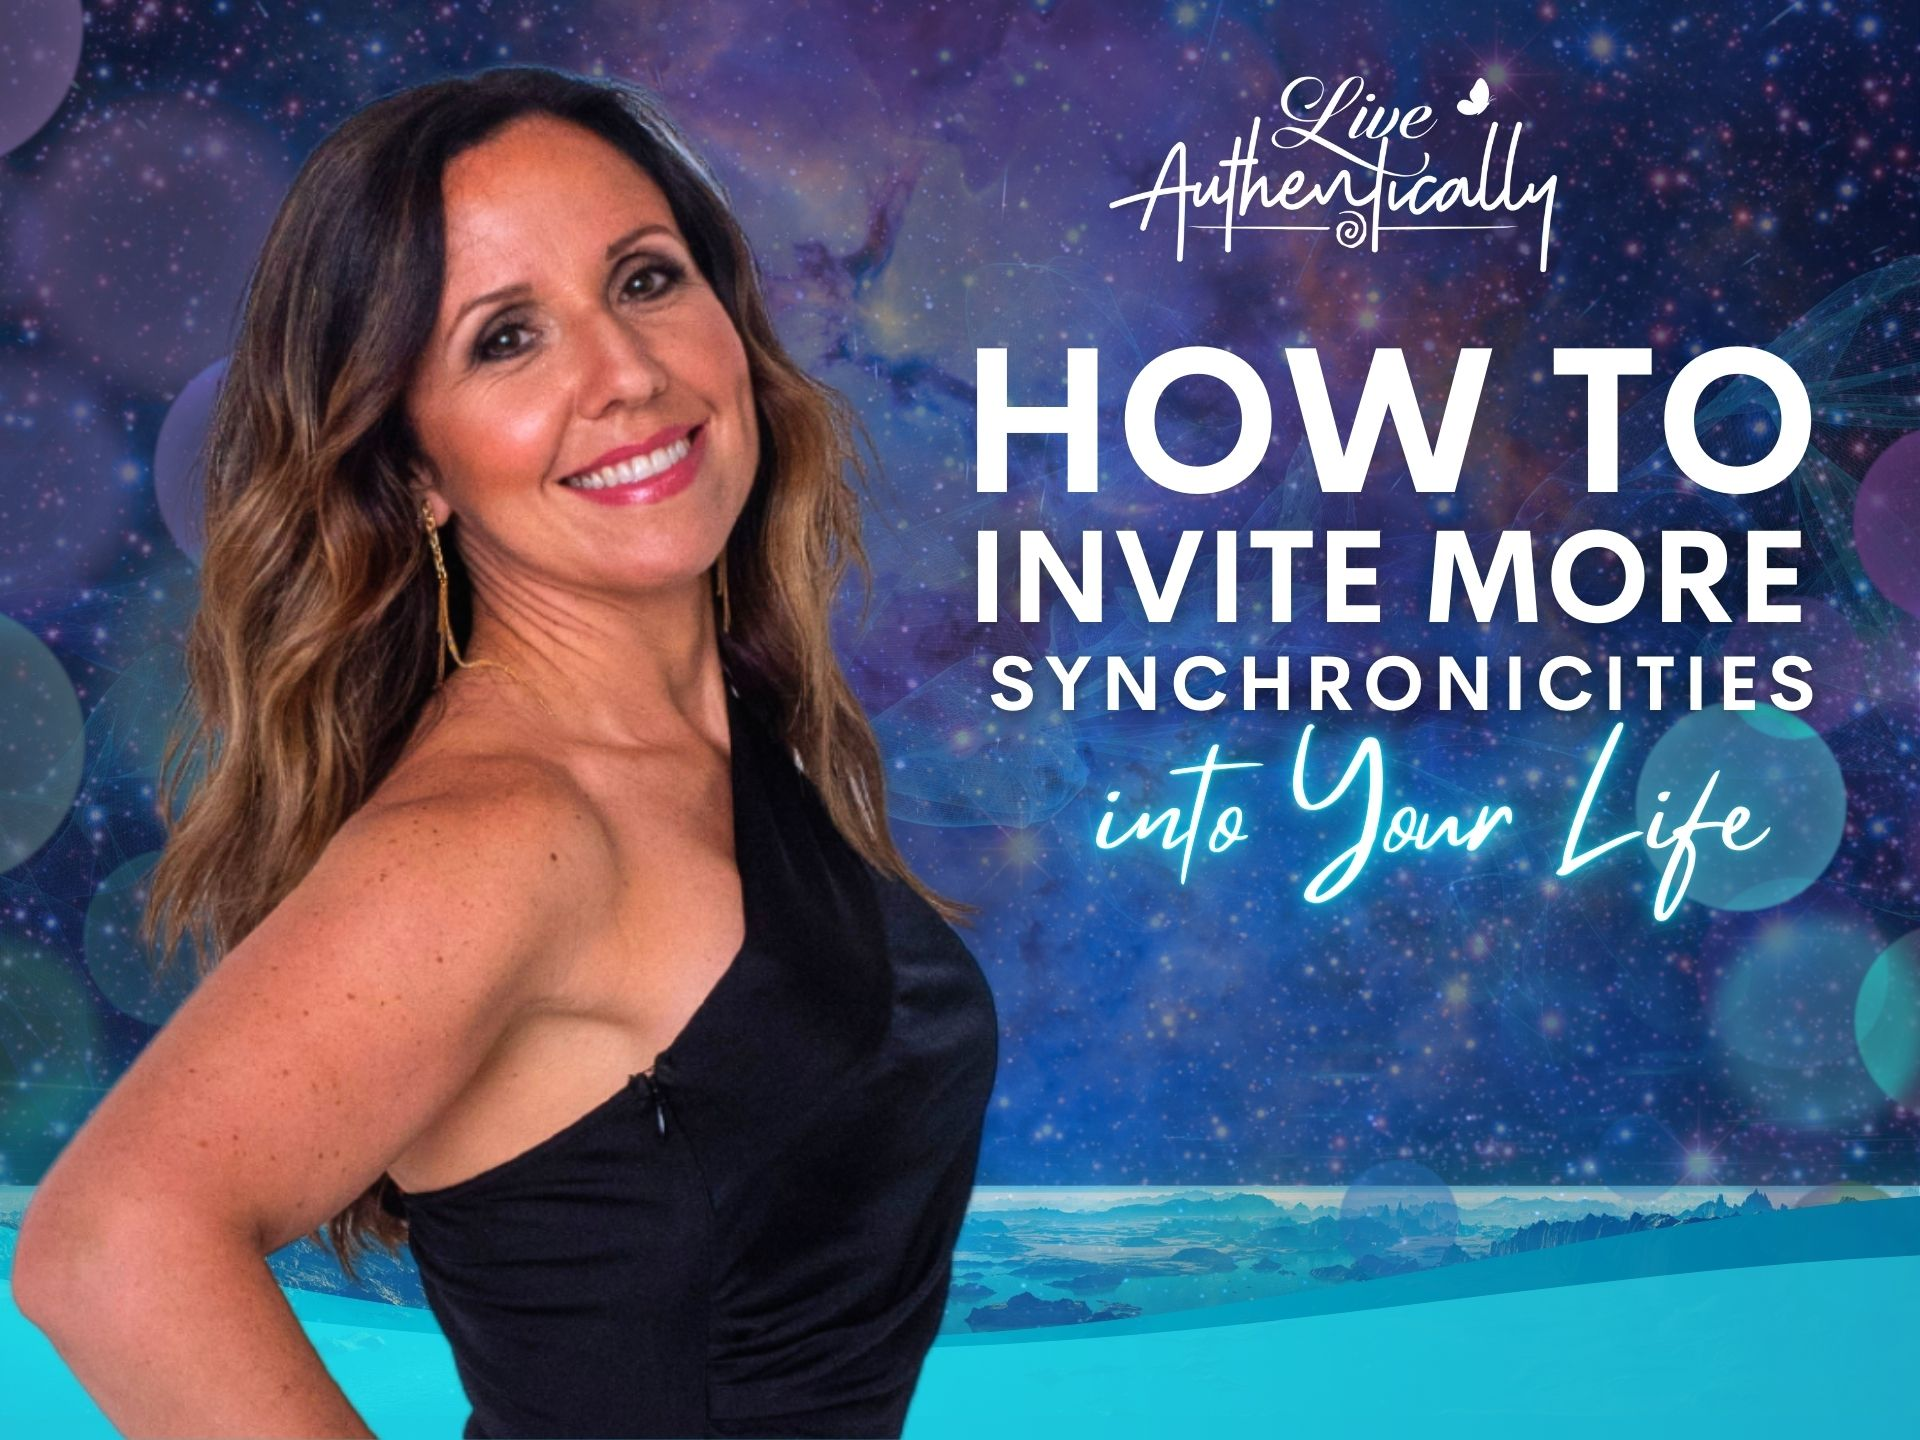 How to Invite More Synchronicities into Your Life